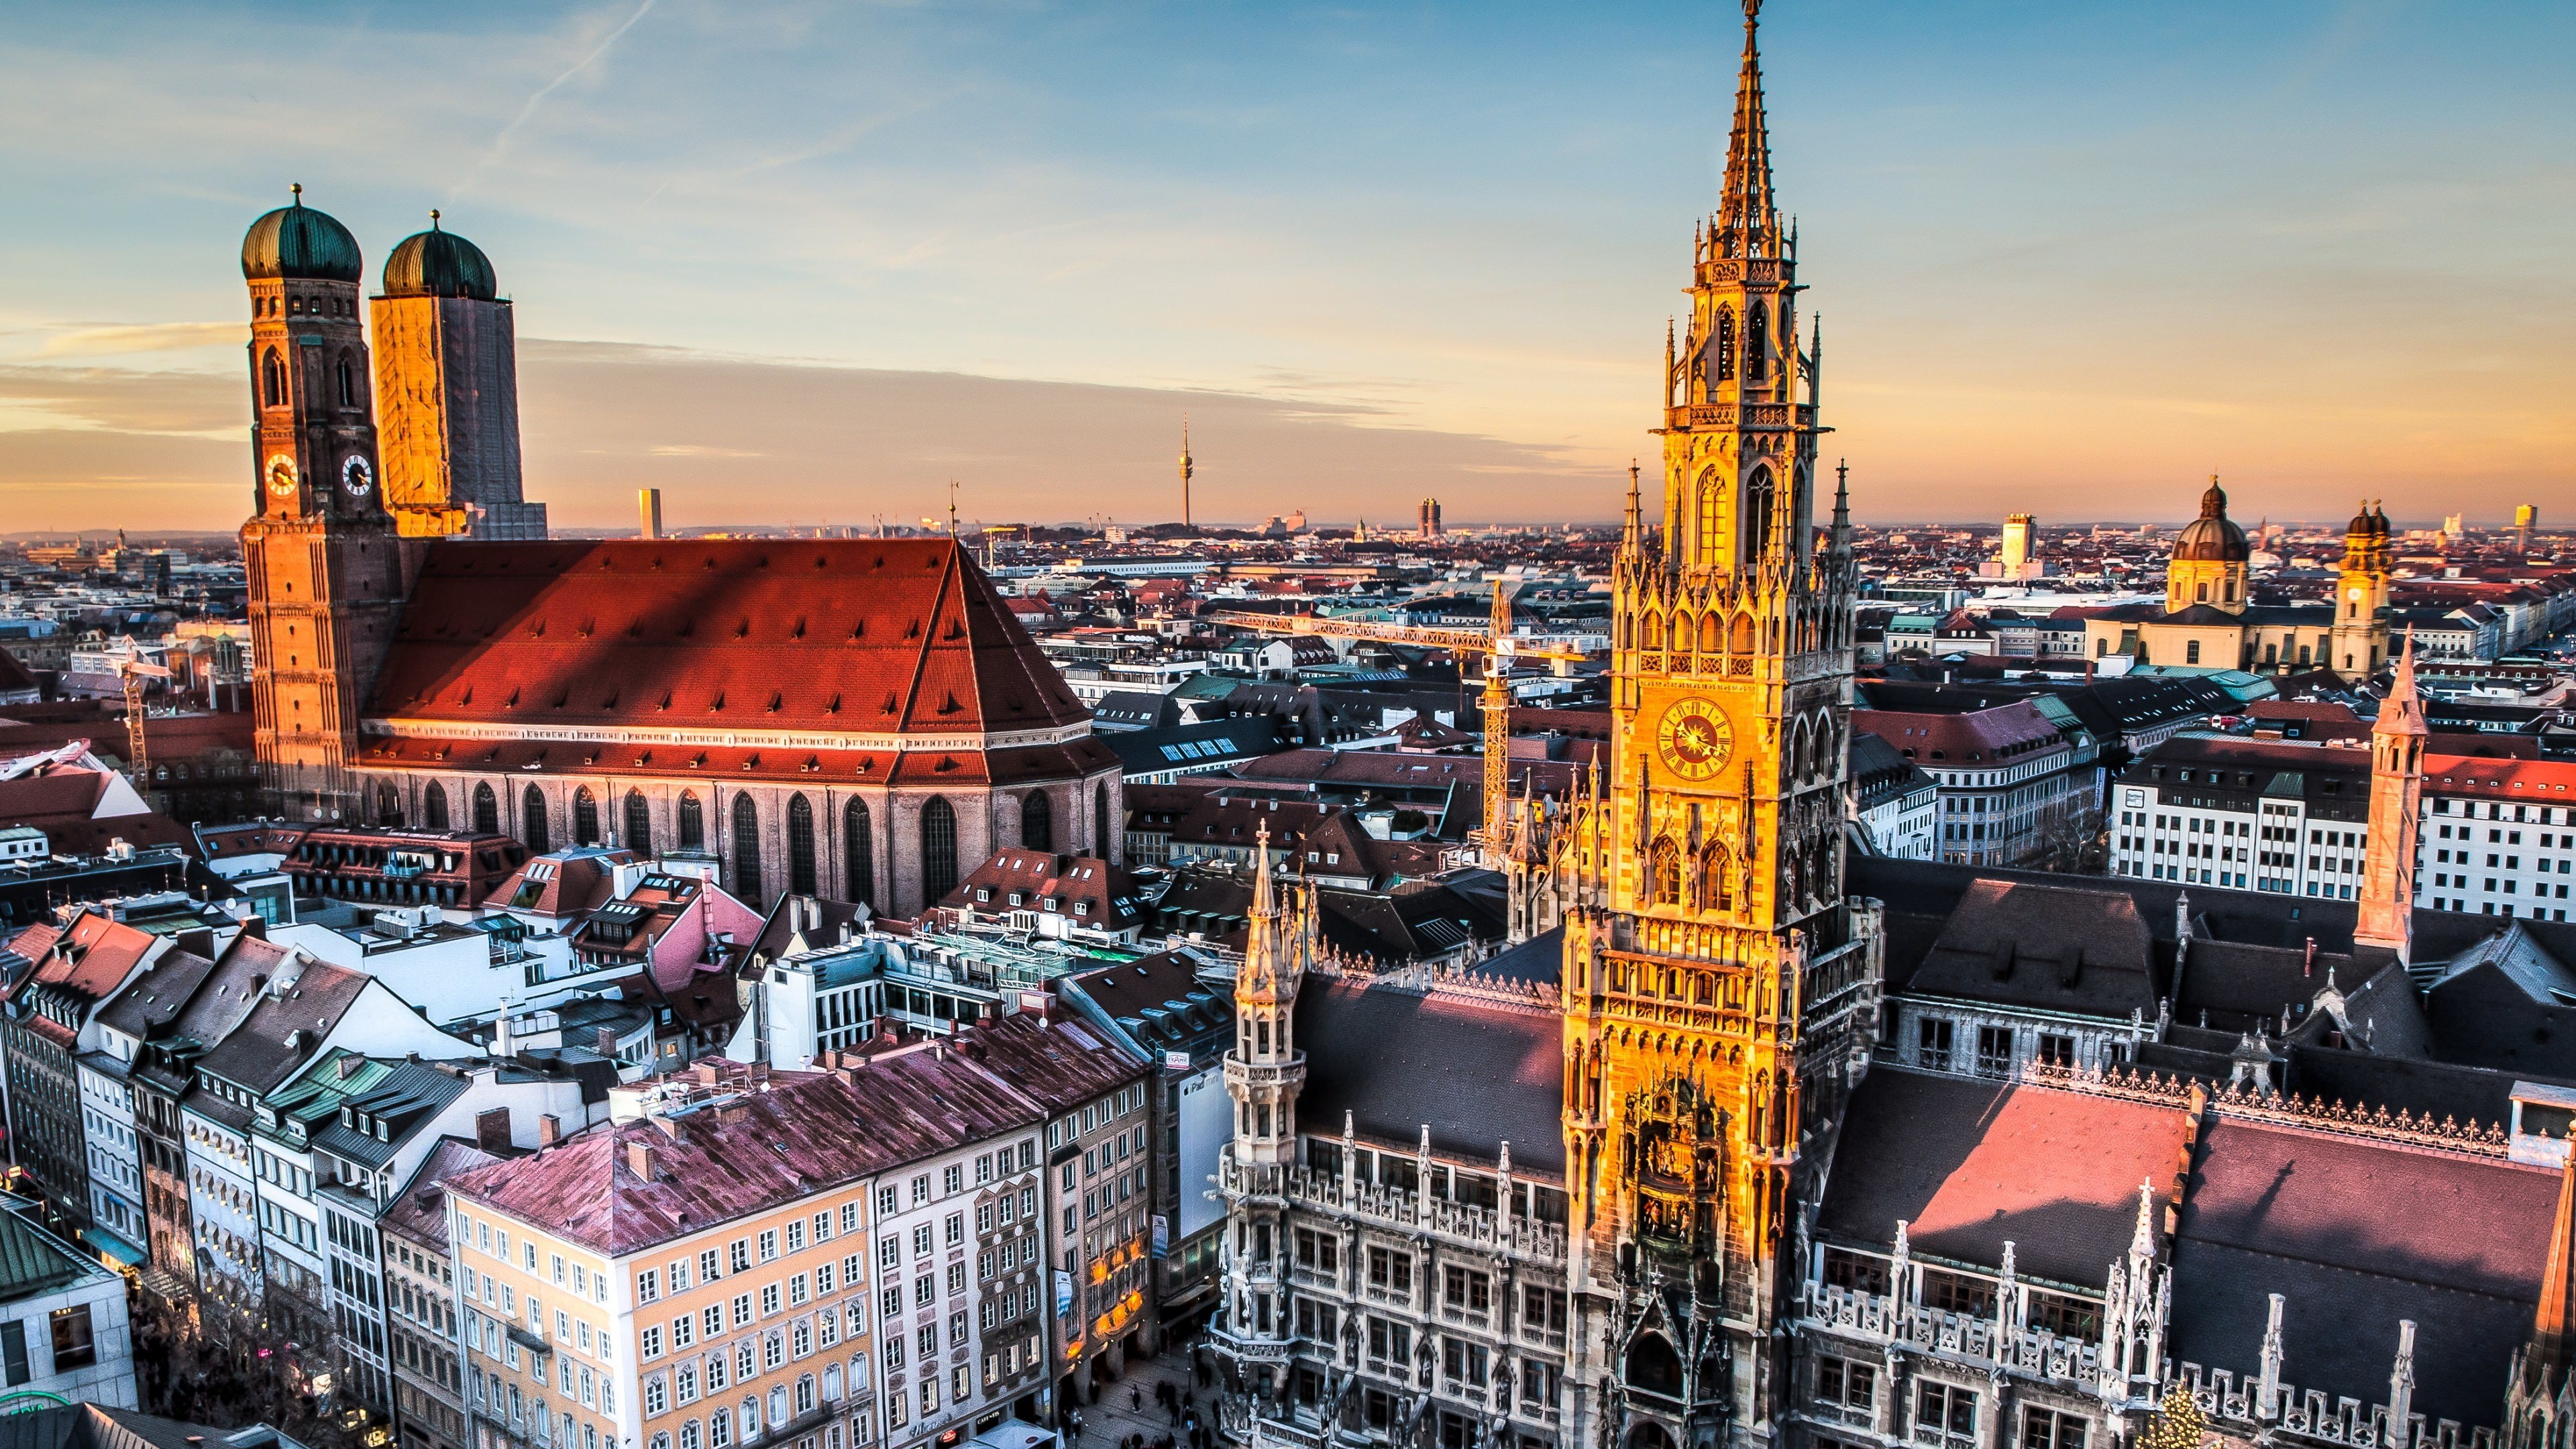 Munich Skyline Wallpaper for Desktop 4K 3840x2160